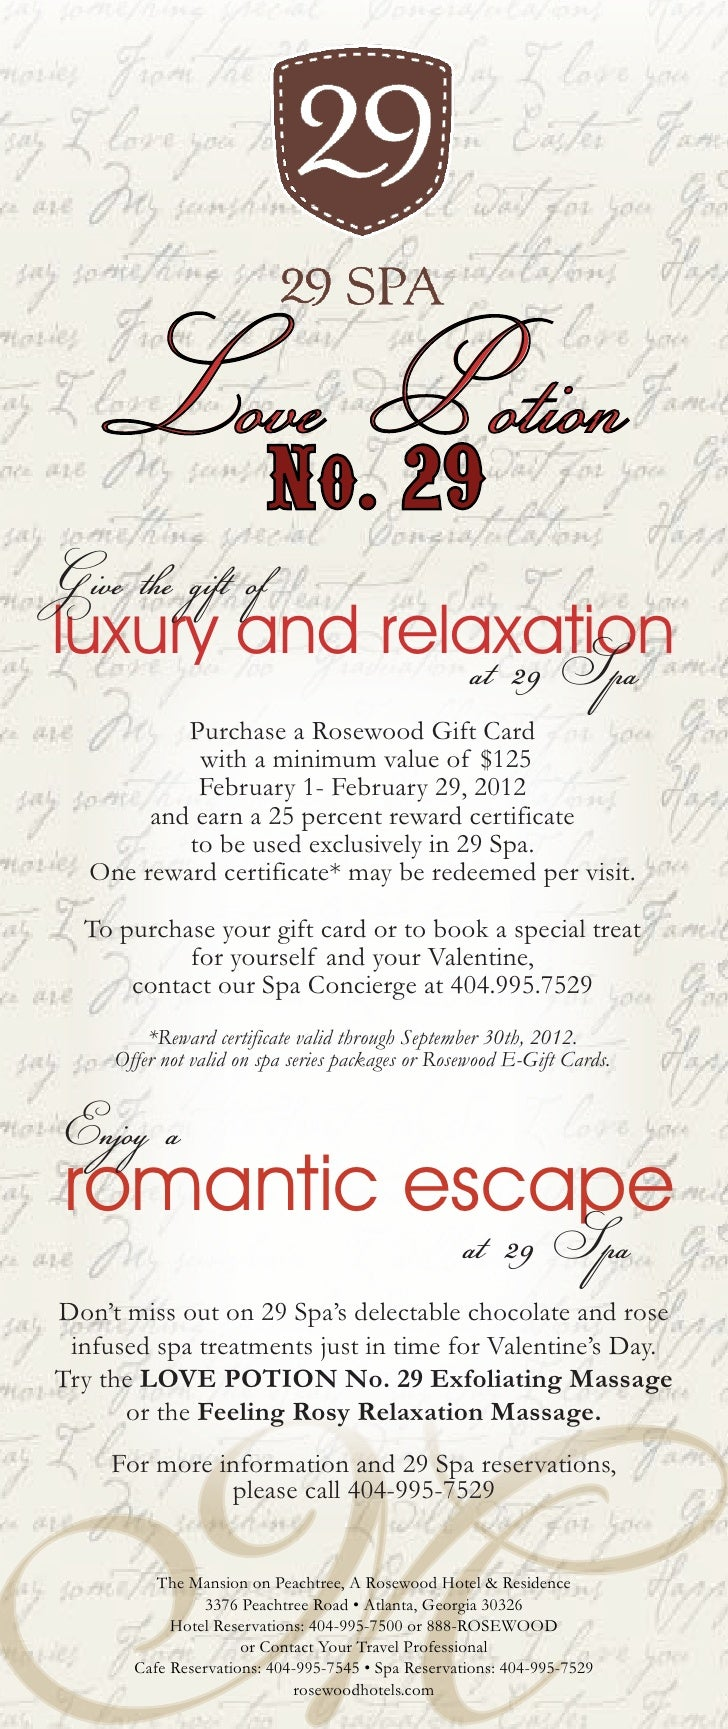 Love Potion                         No. 29Give the gift ofluxury and relaxation              at 29 Spa           Purchase ...